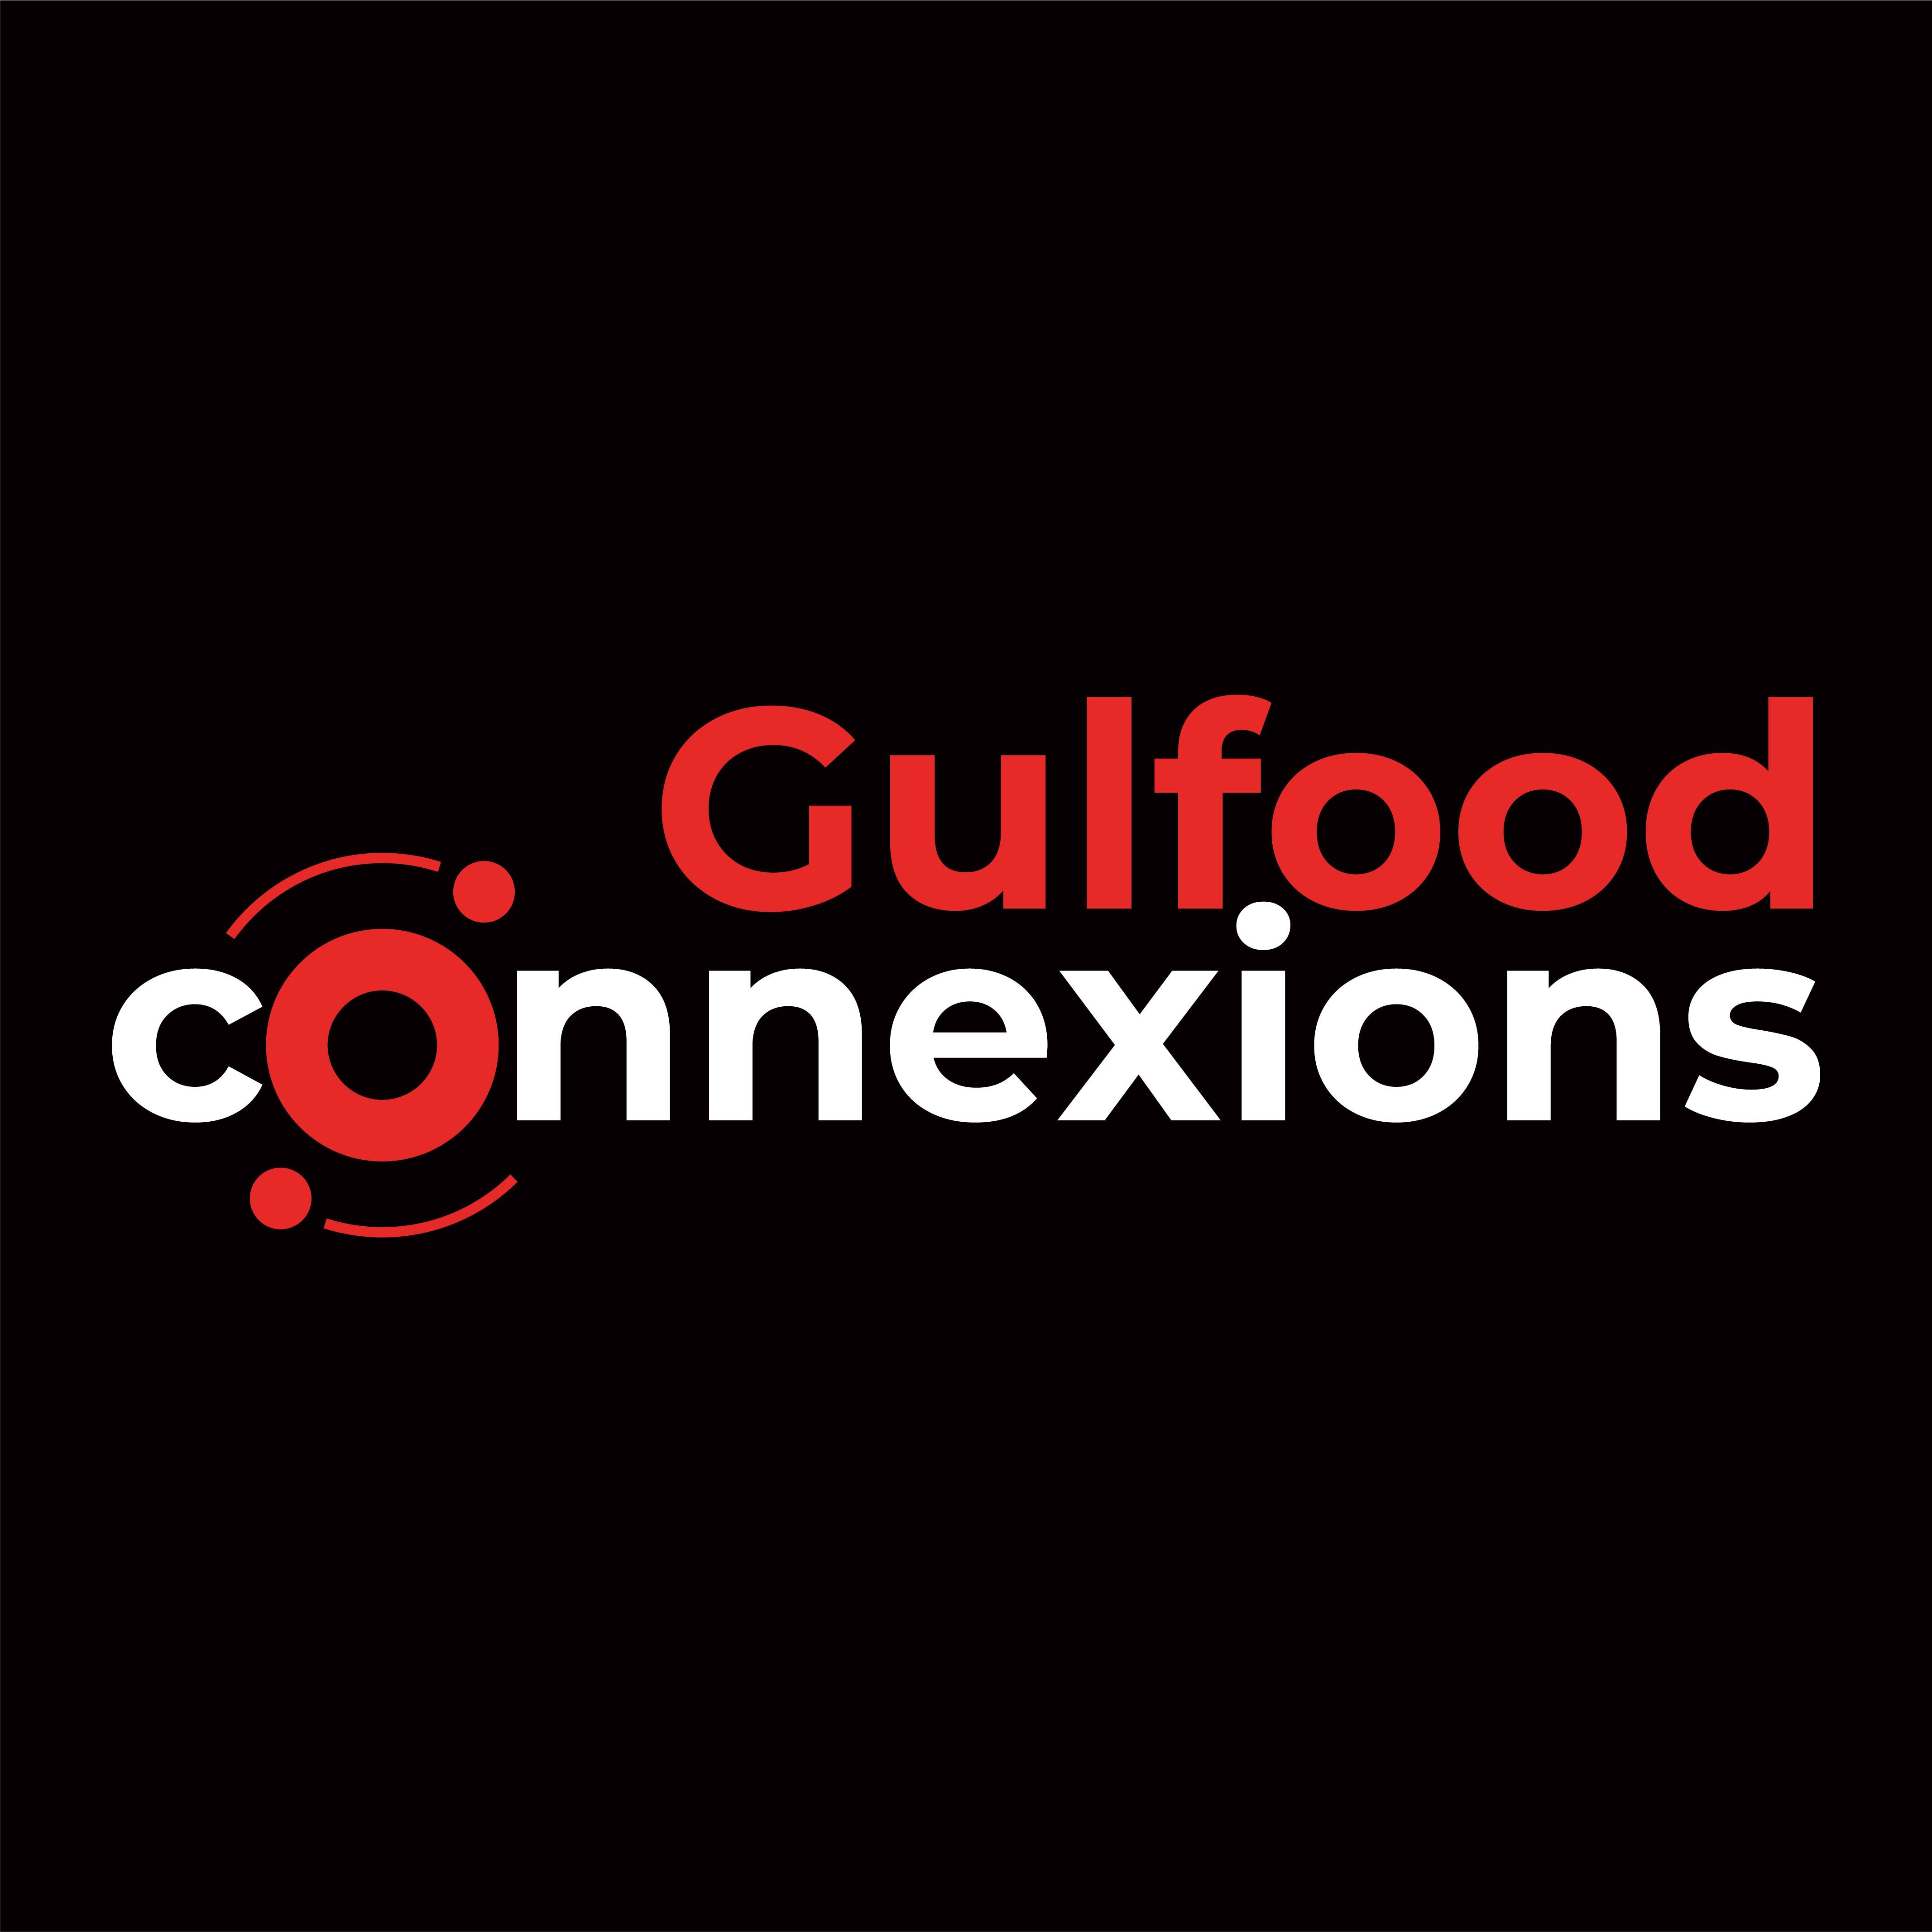 Gulfood connexions